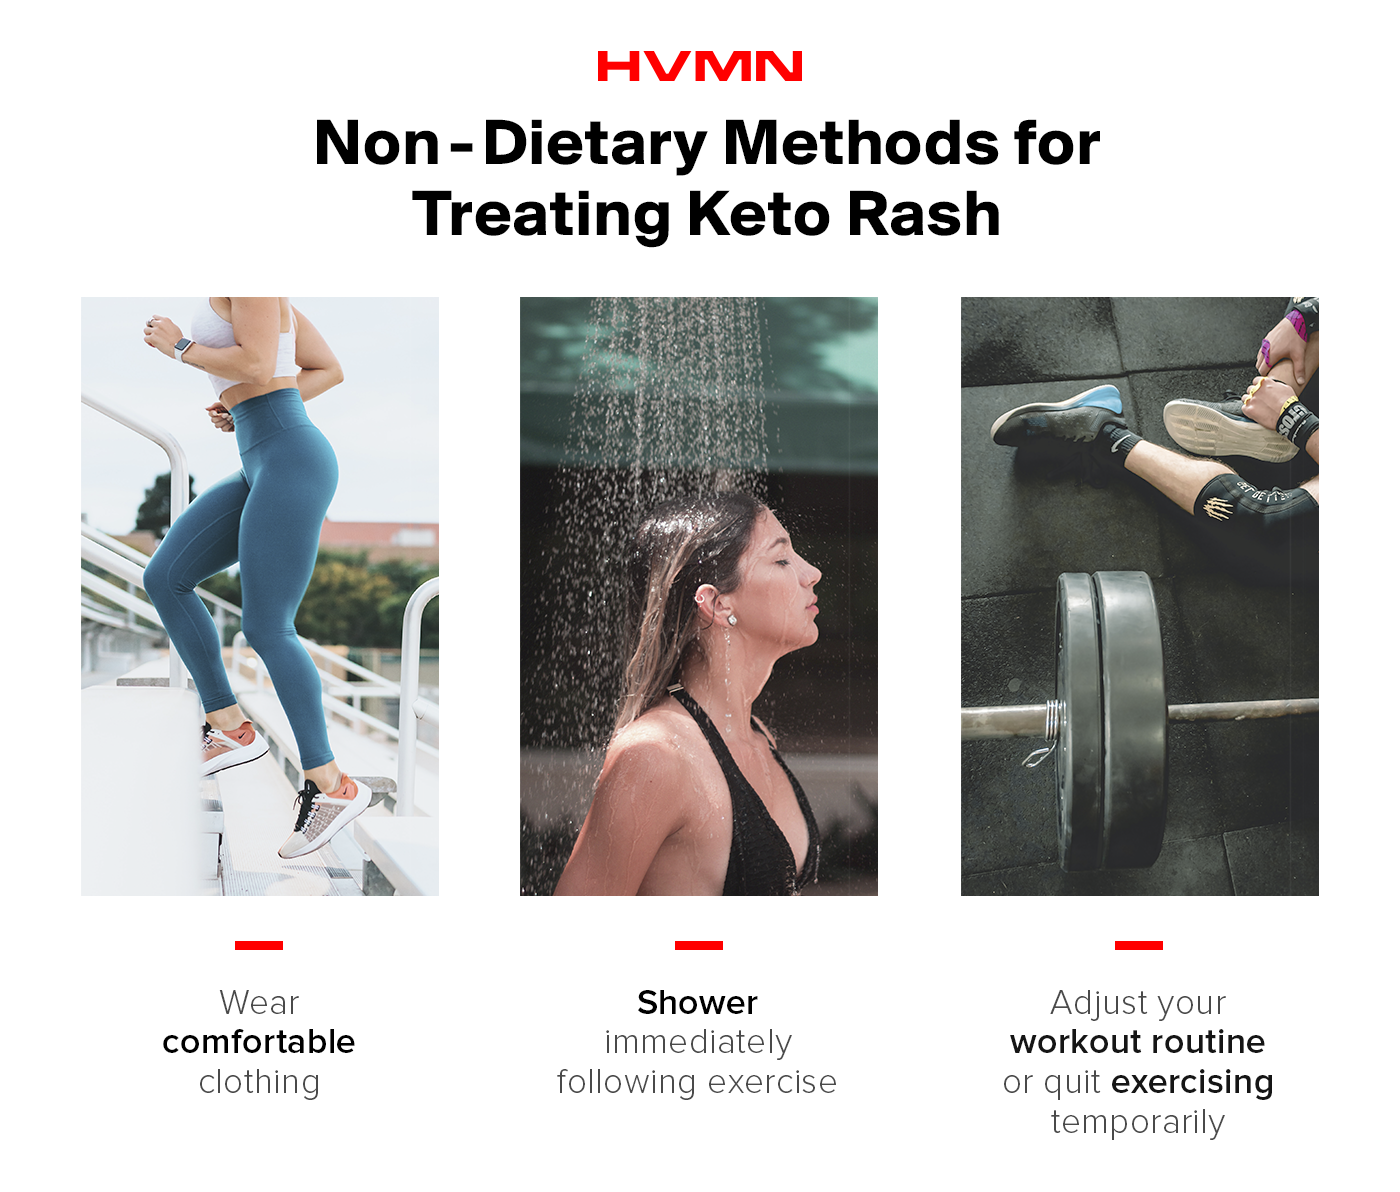 This image describes non-dietary methods of treating keto rash including wearing comfortable clothing, showering, and adjusting your workout routine.